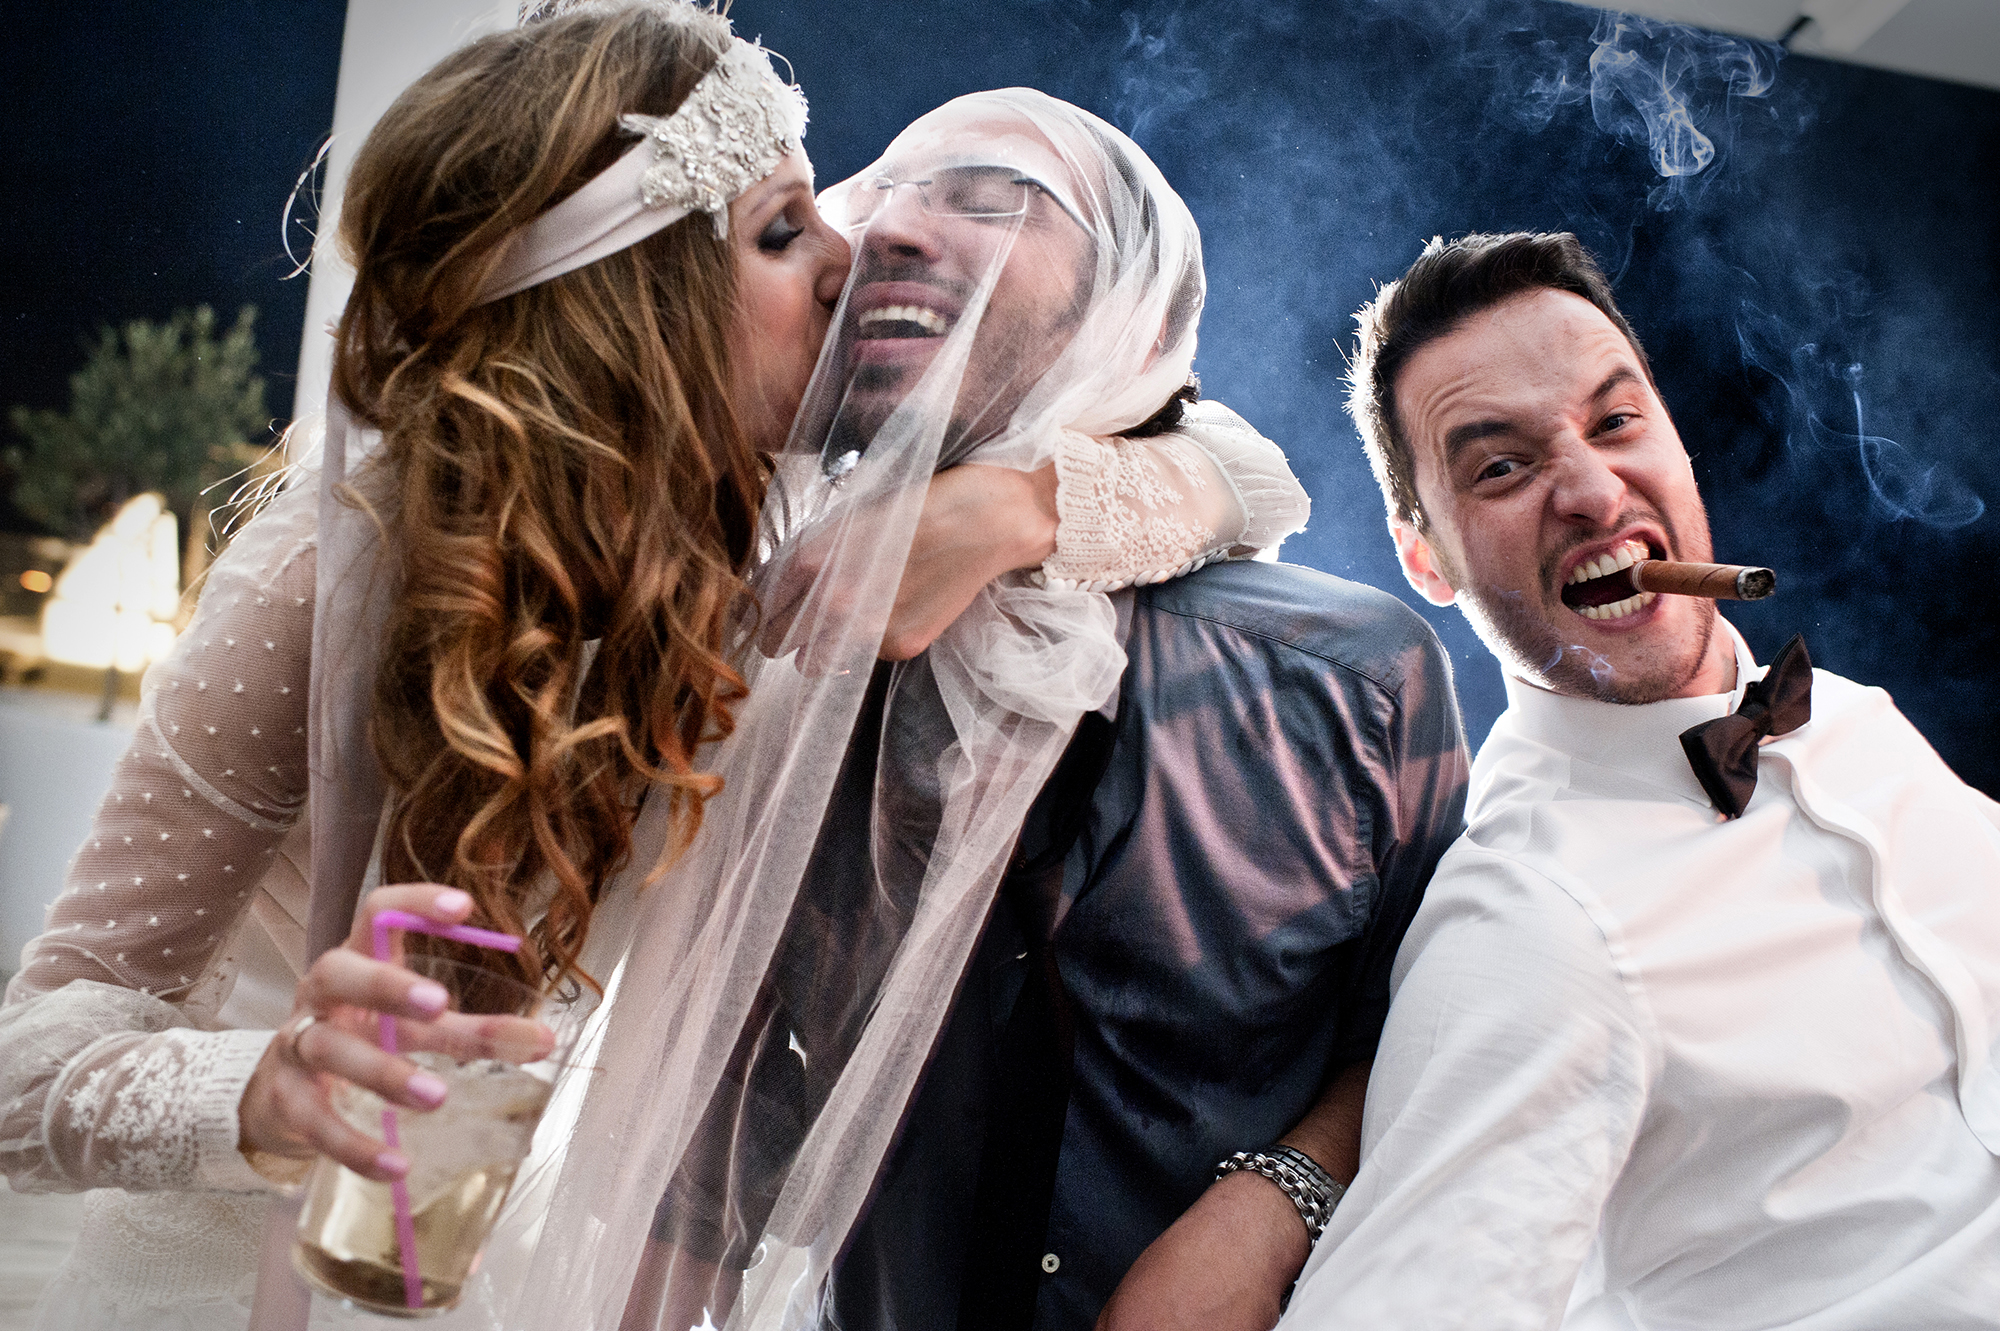 Bride kissing groom wrapped in veil - photo by Victor Lax